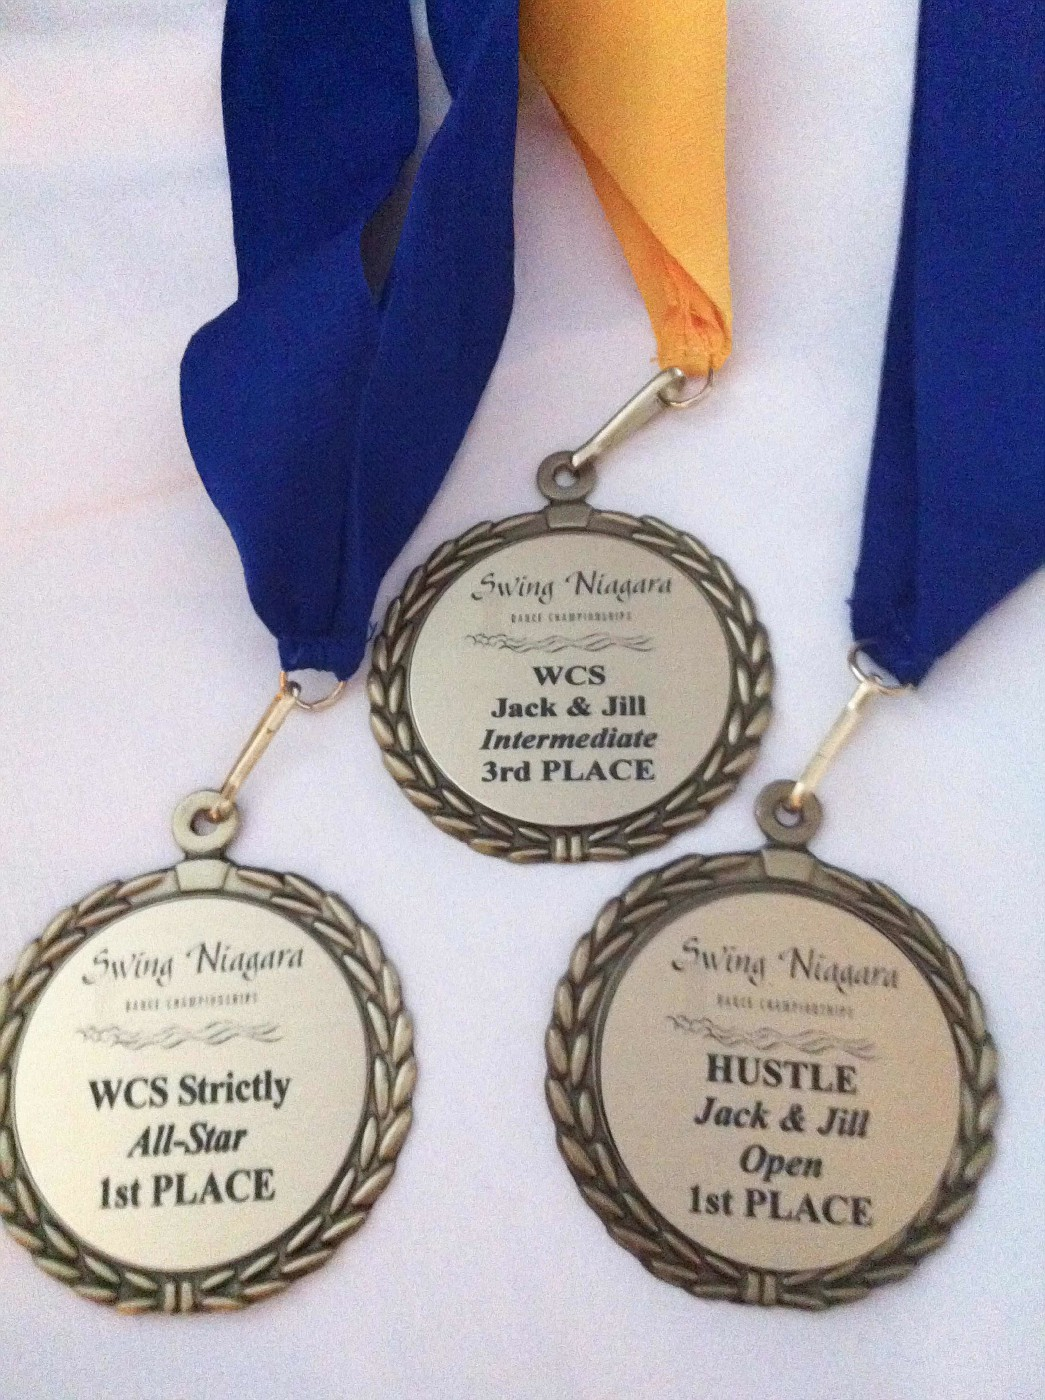 Anna Novoa's Medals from Swing Niagara